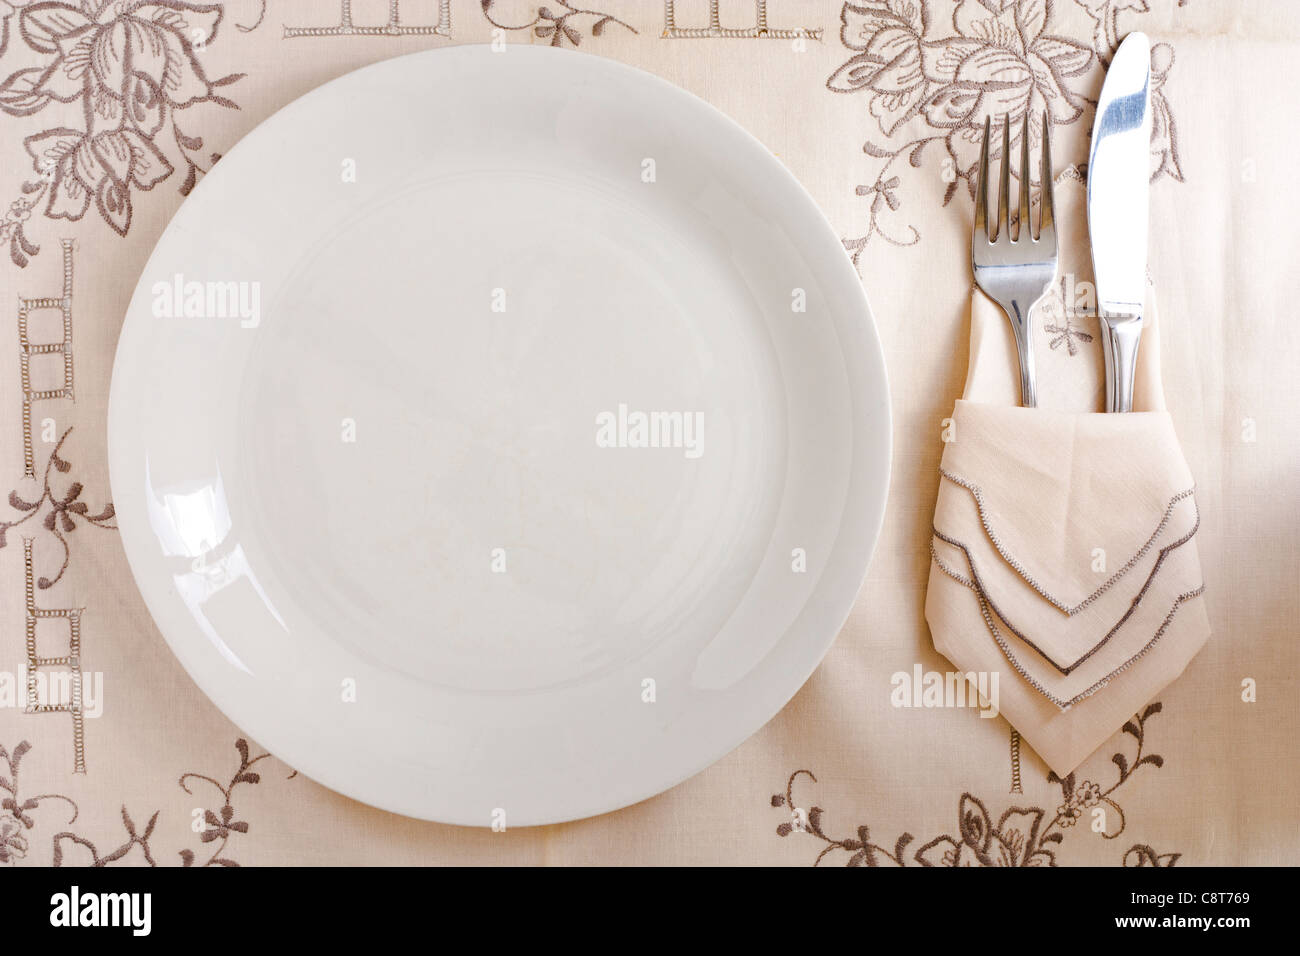 Empty Dish with Silverware - Stock Image